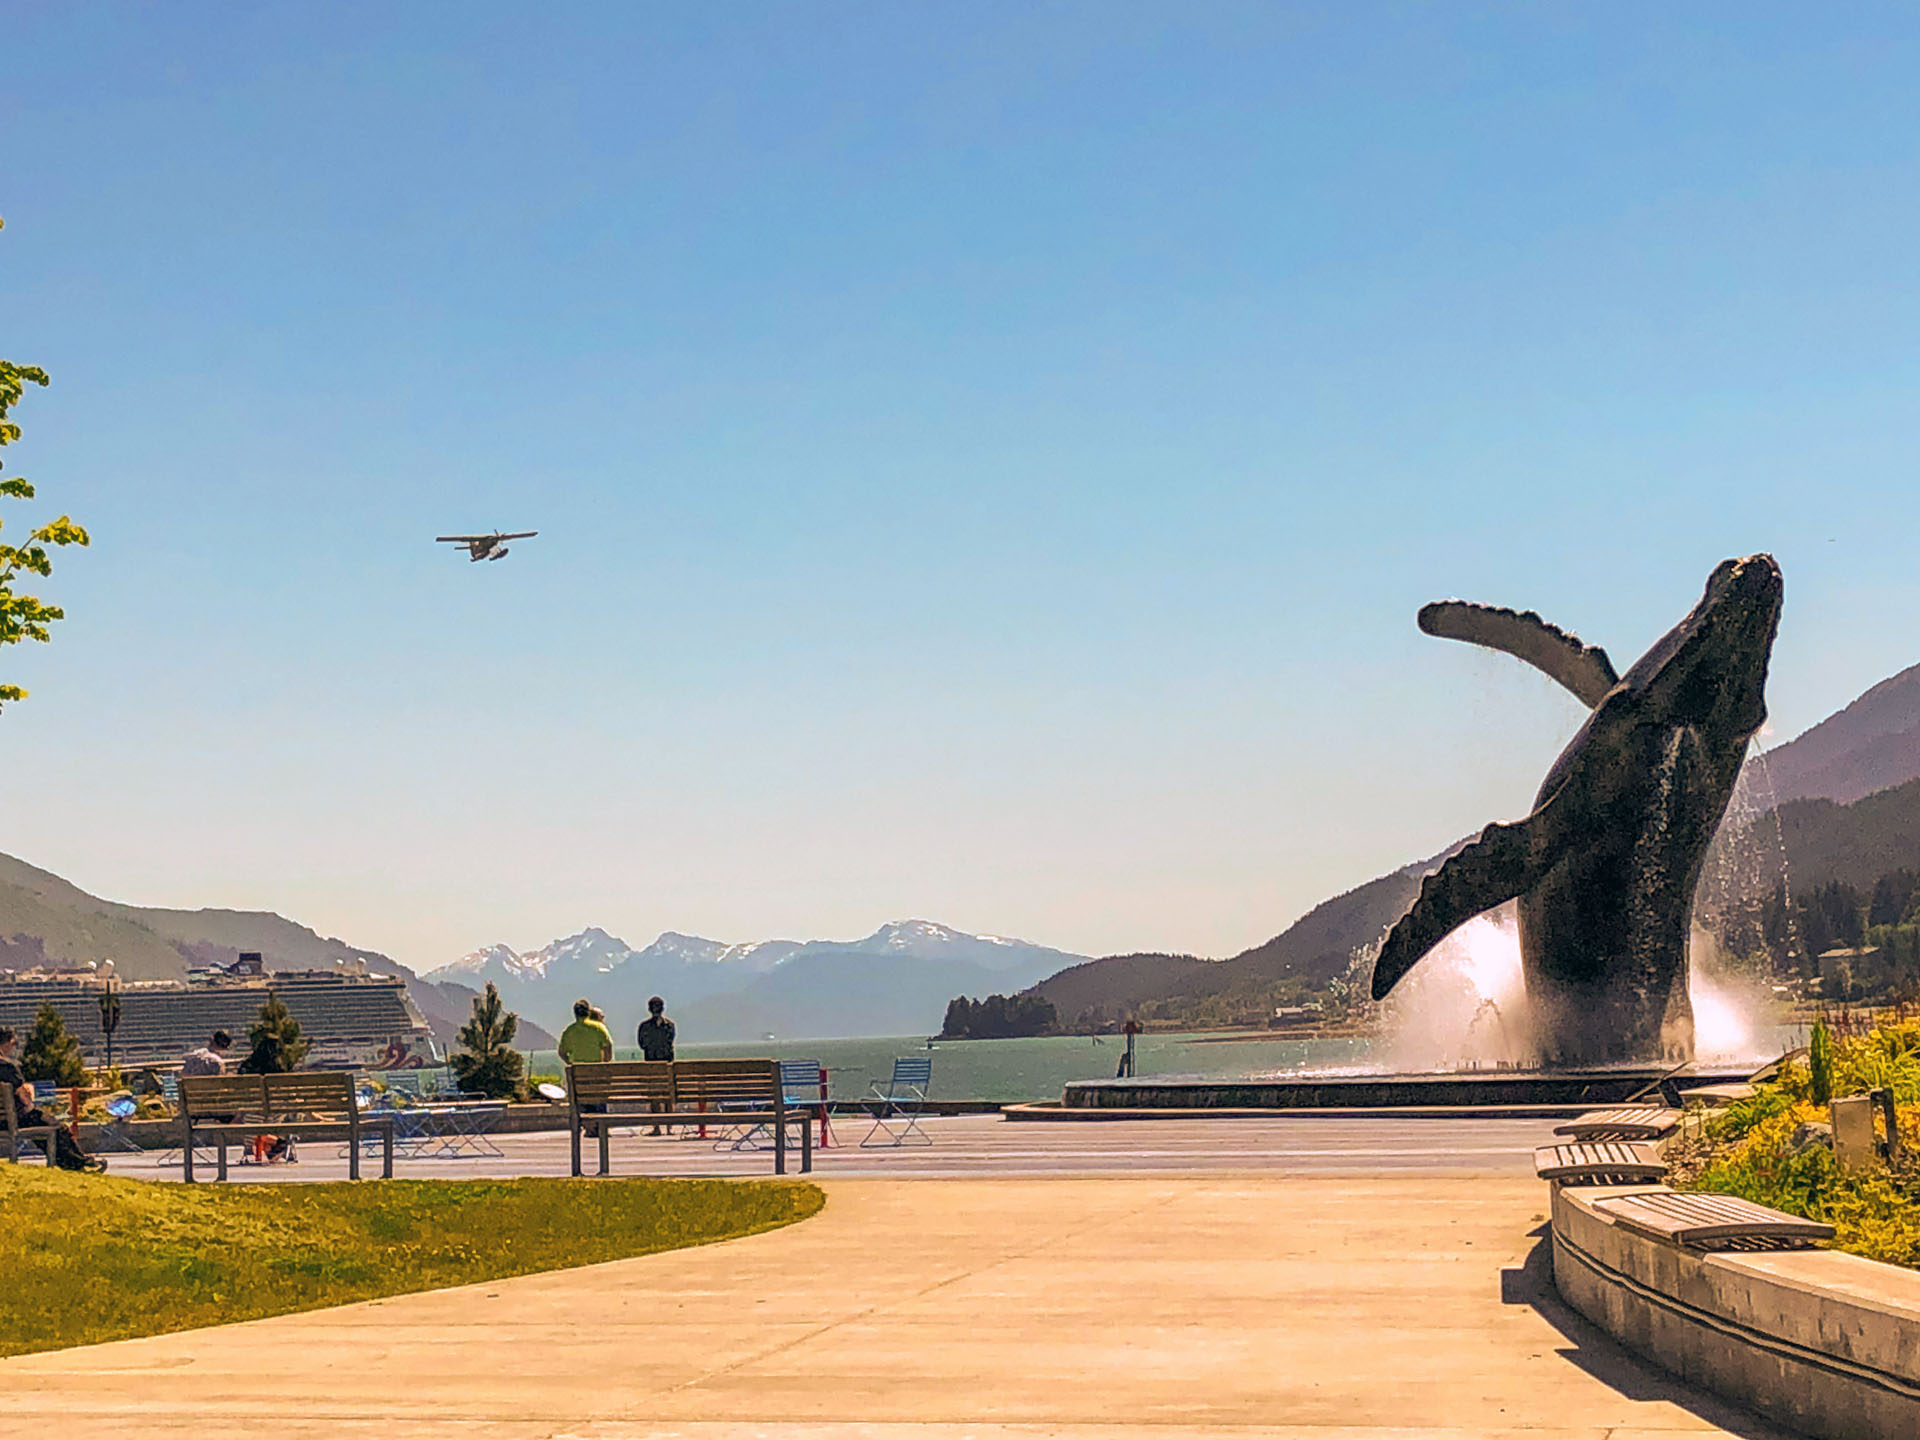 A picture containing sky, outdoor, grass, nature, life-size whale sculpture, fountain